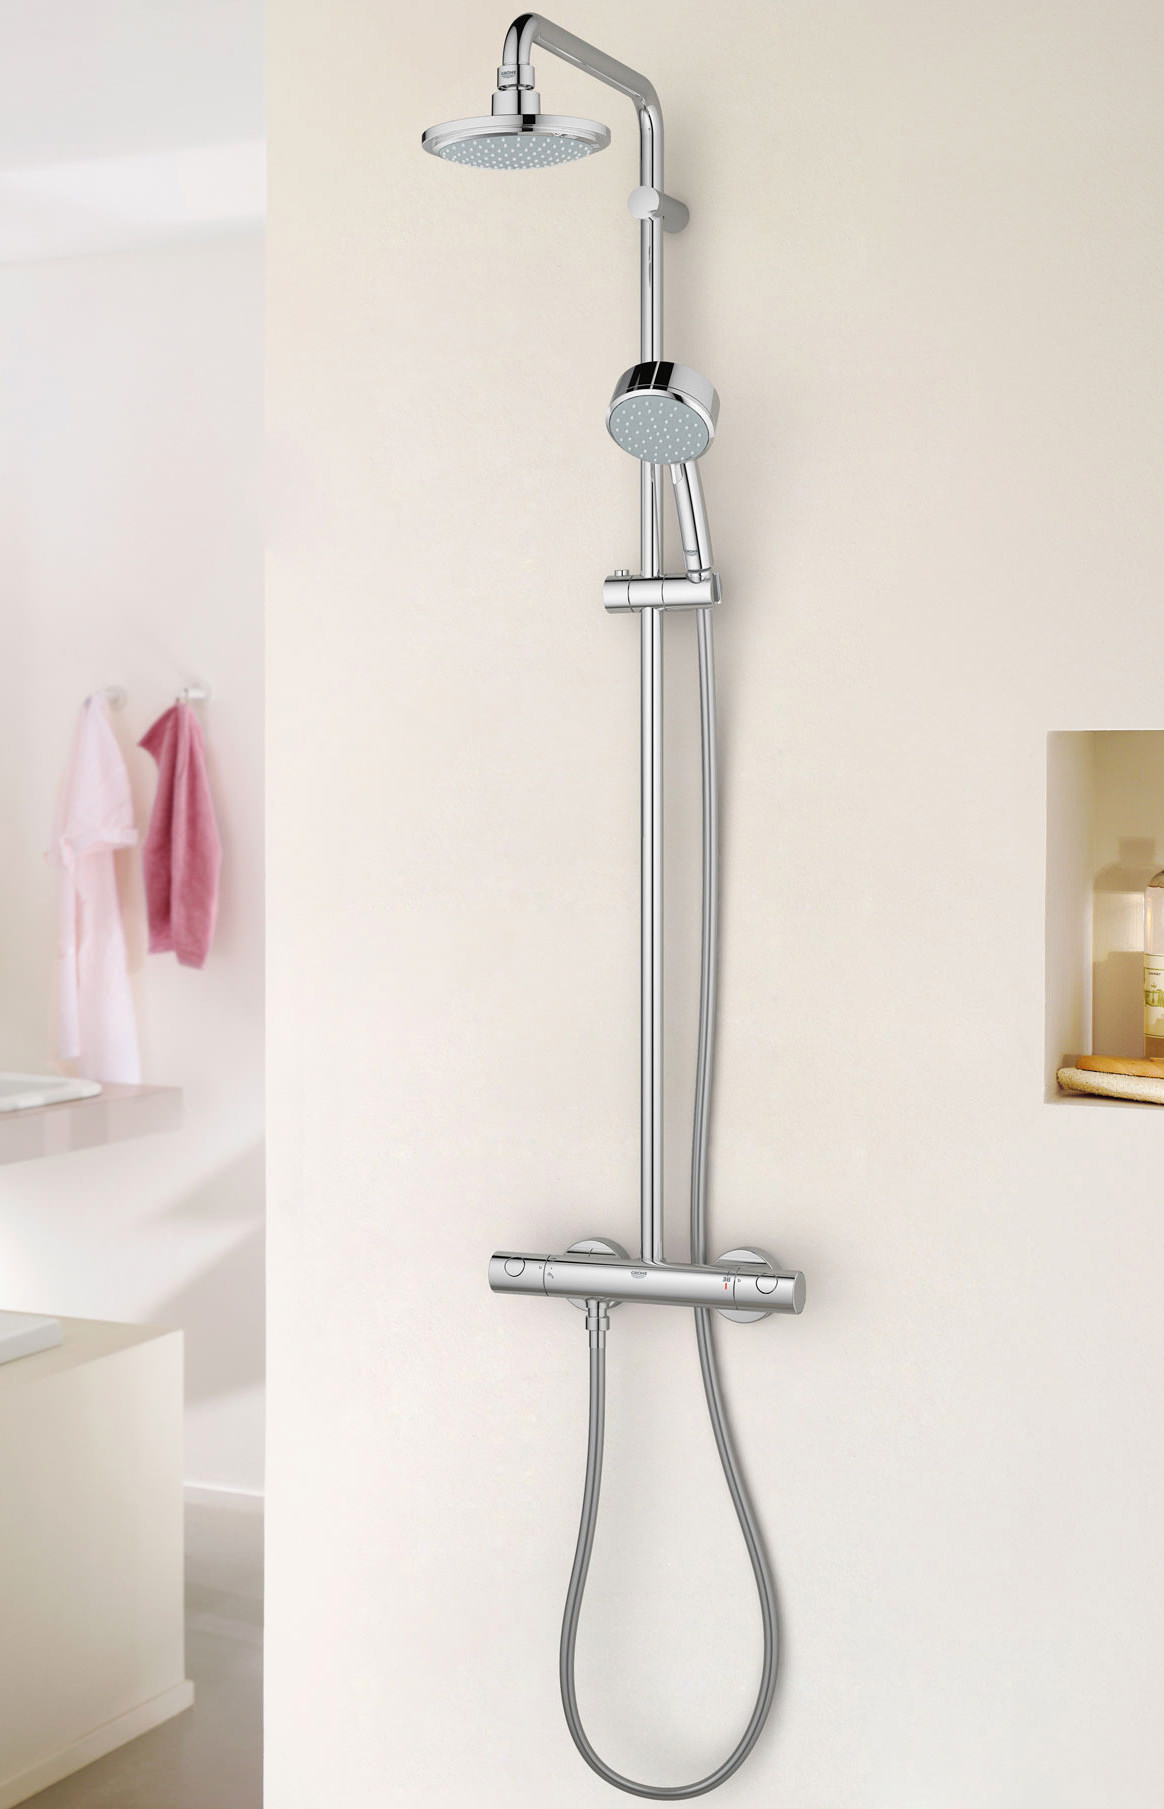 Grohe New Tempesta Cosmopolitan Shower System With Thermostat